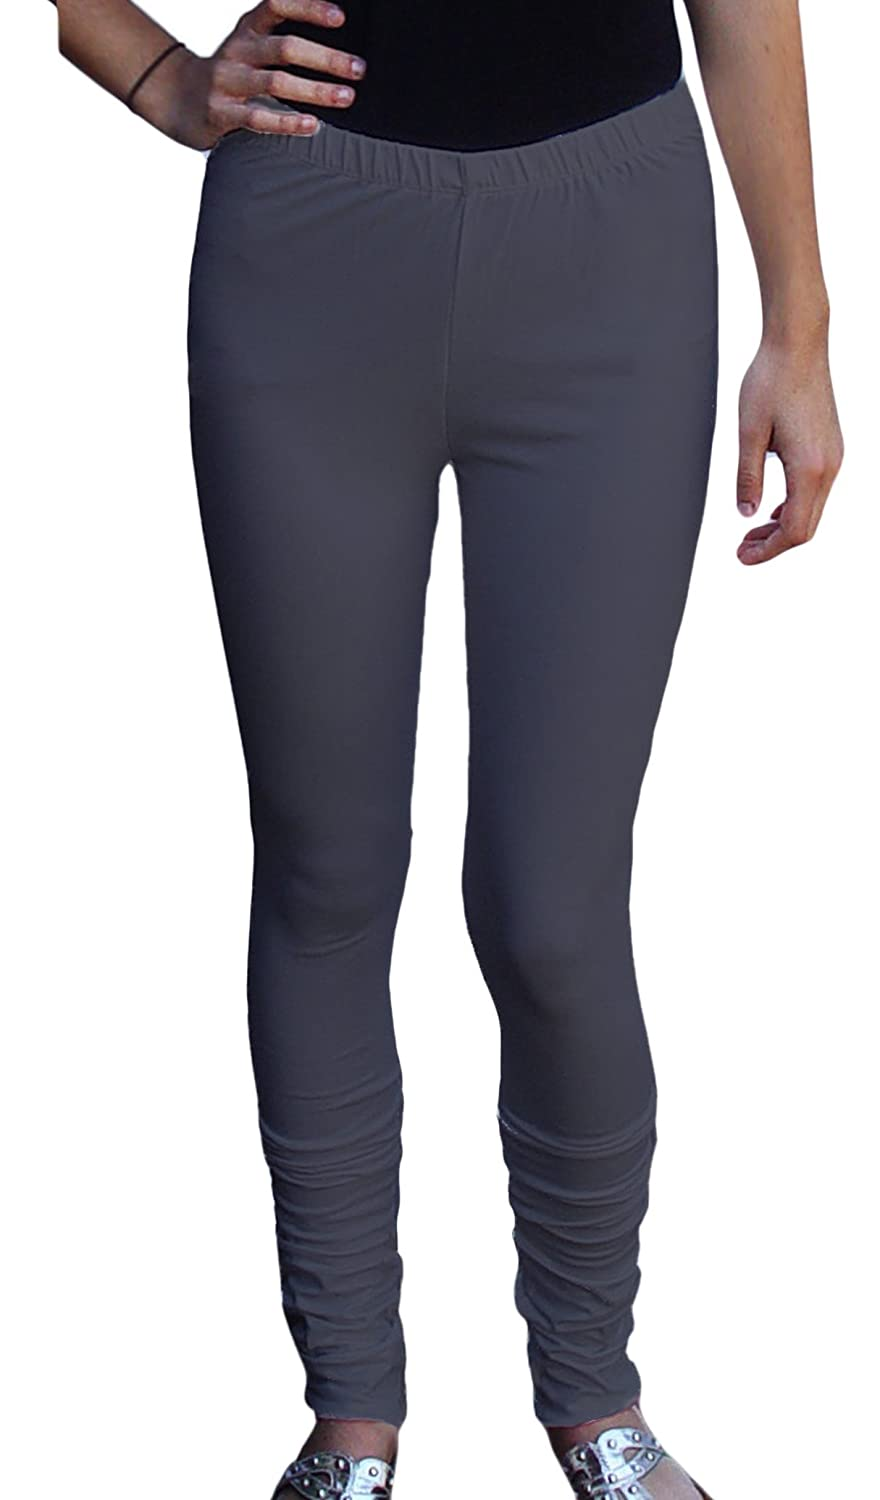 1a60f5954e6a43 Ayurvastram Pure Cotton Jersey Extra Long Leggings at Amazon Women's  Clothing store: